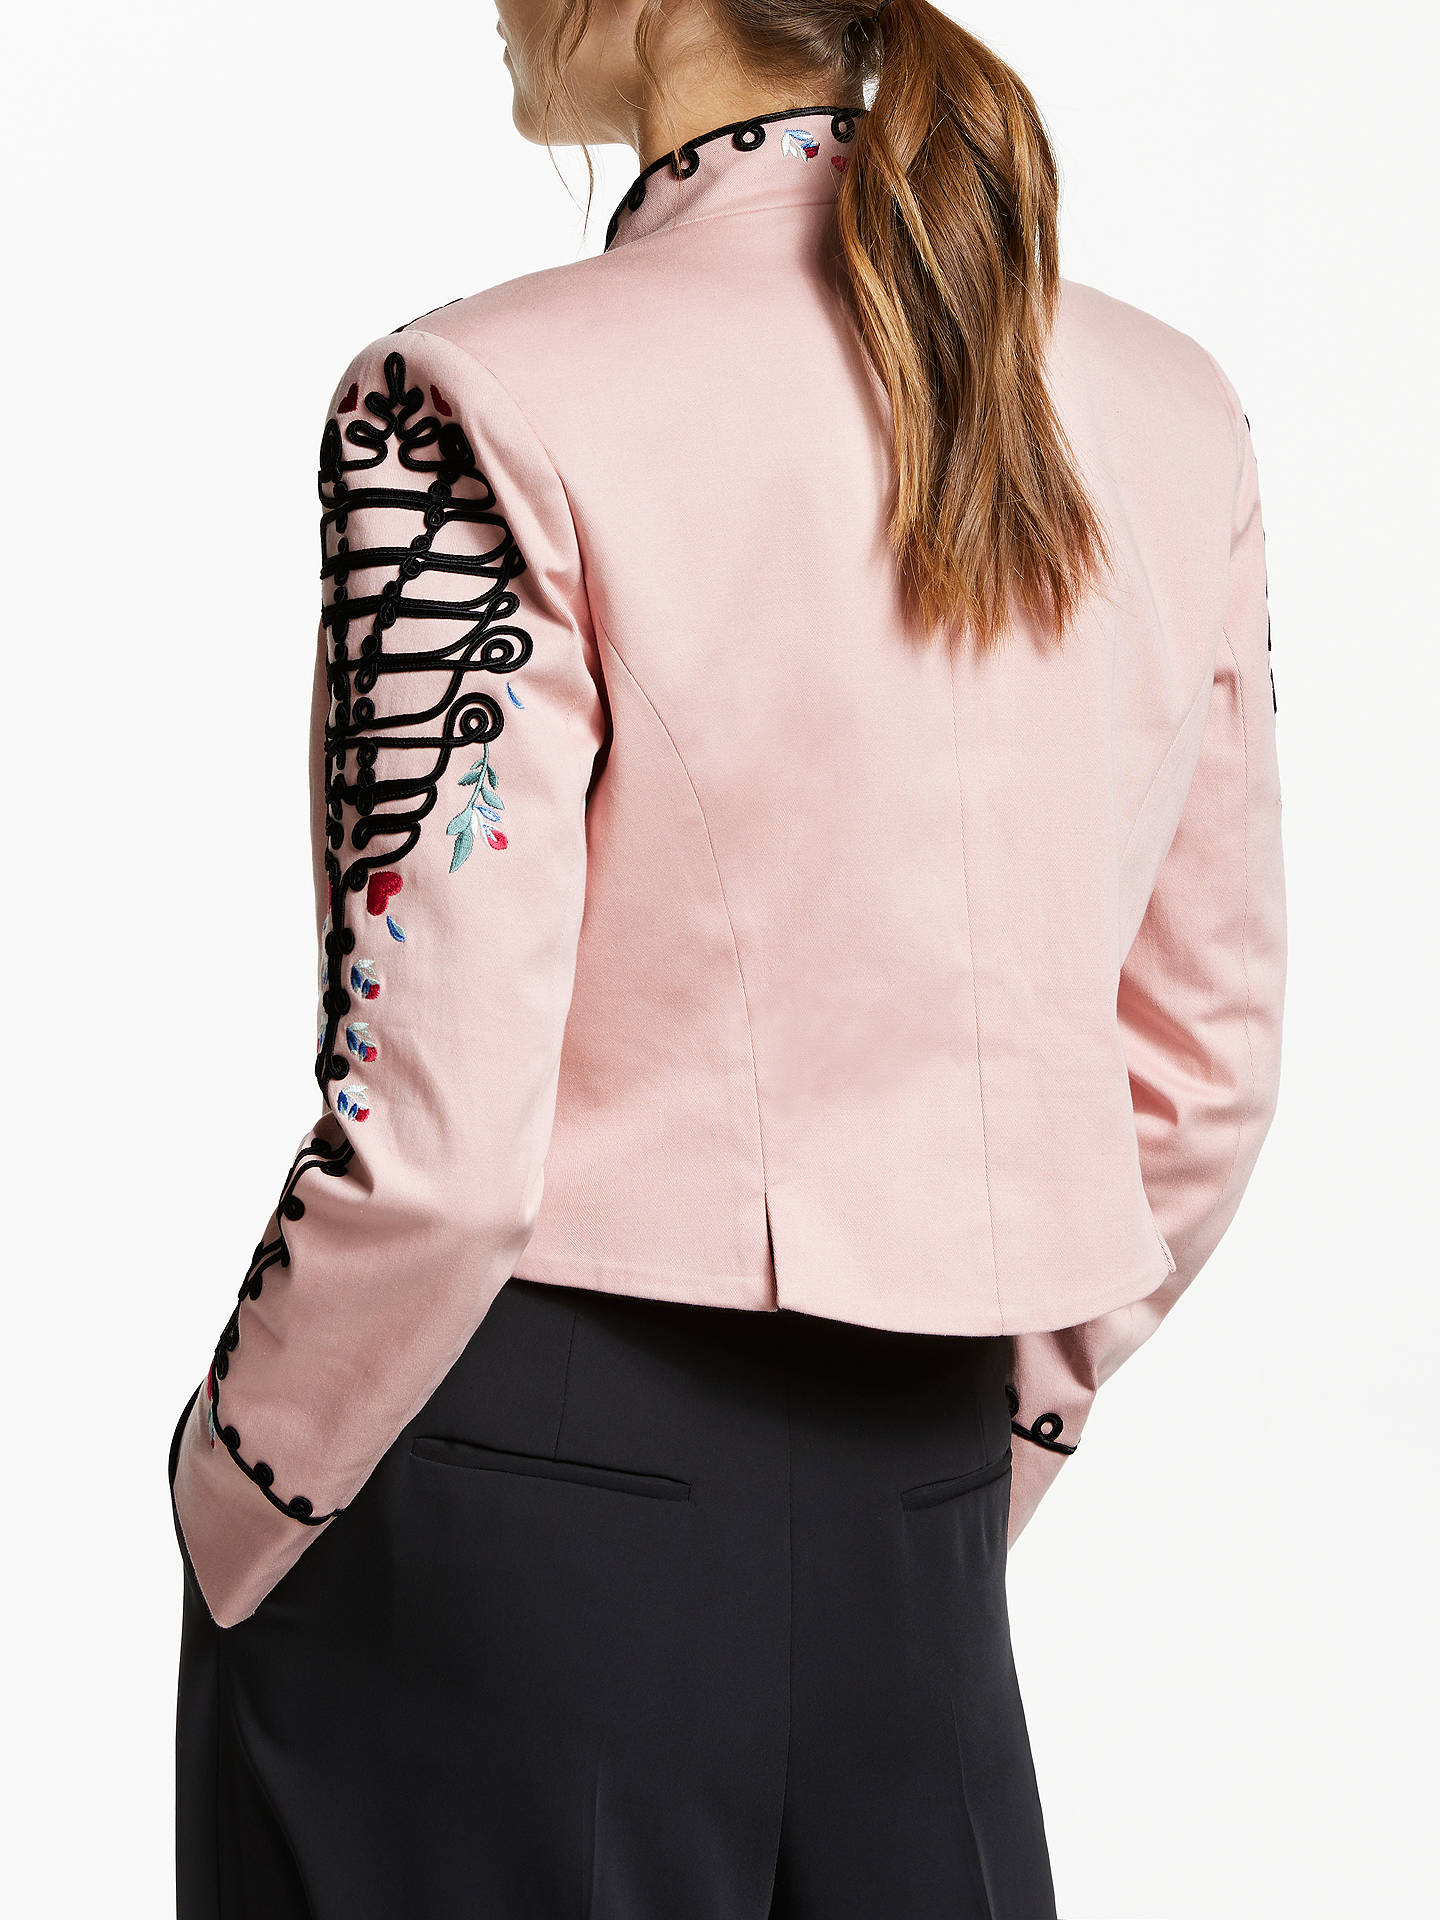 ... BuySomerset by Alice Temperley Embroidered Military Jacket ed848b3e4